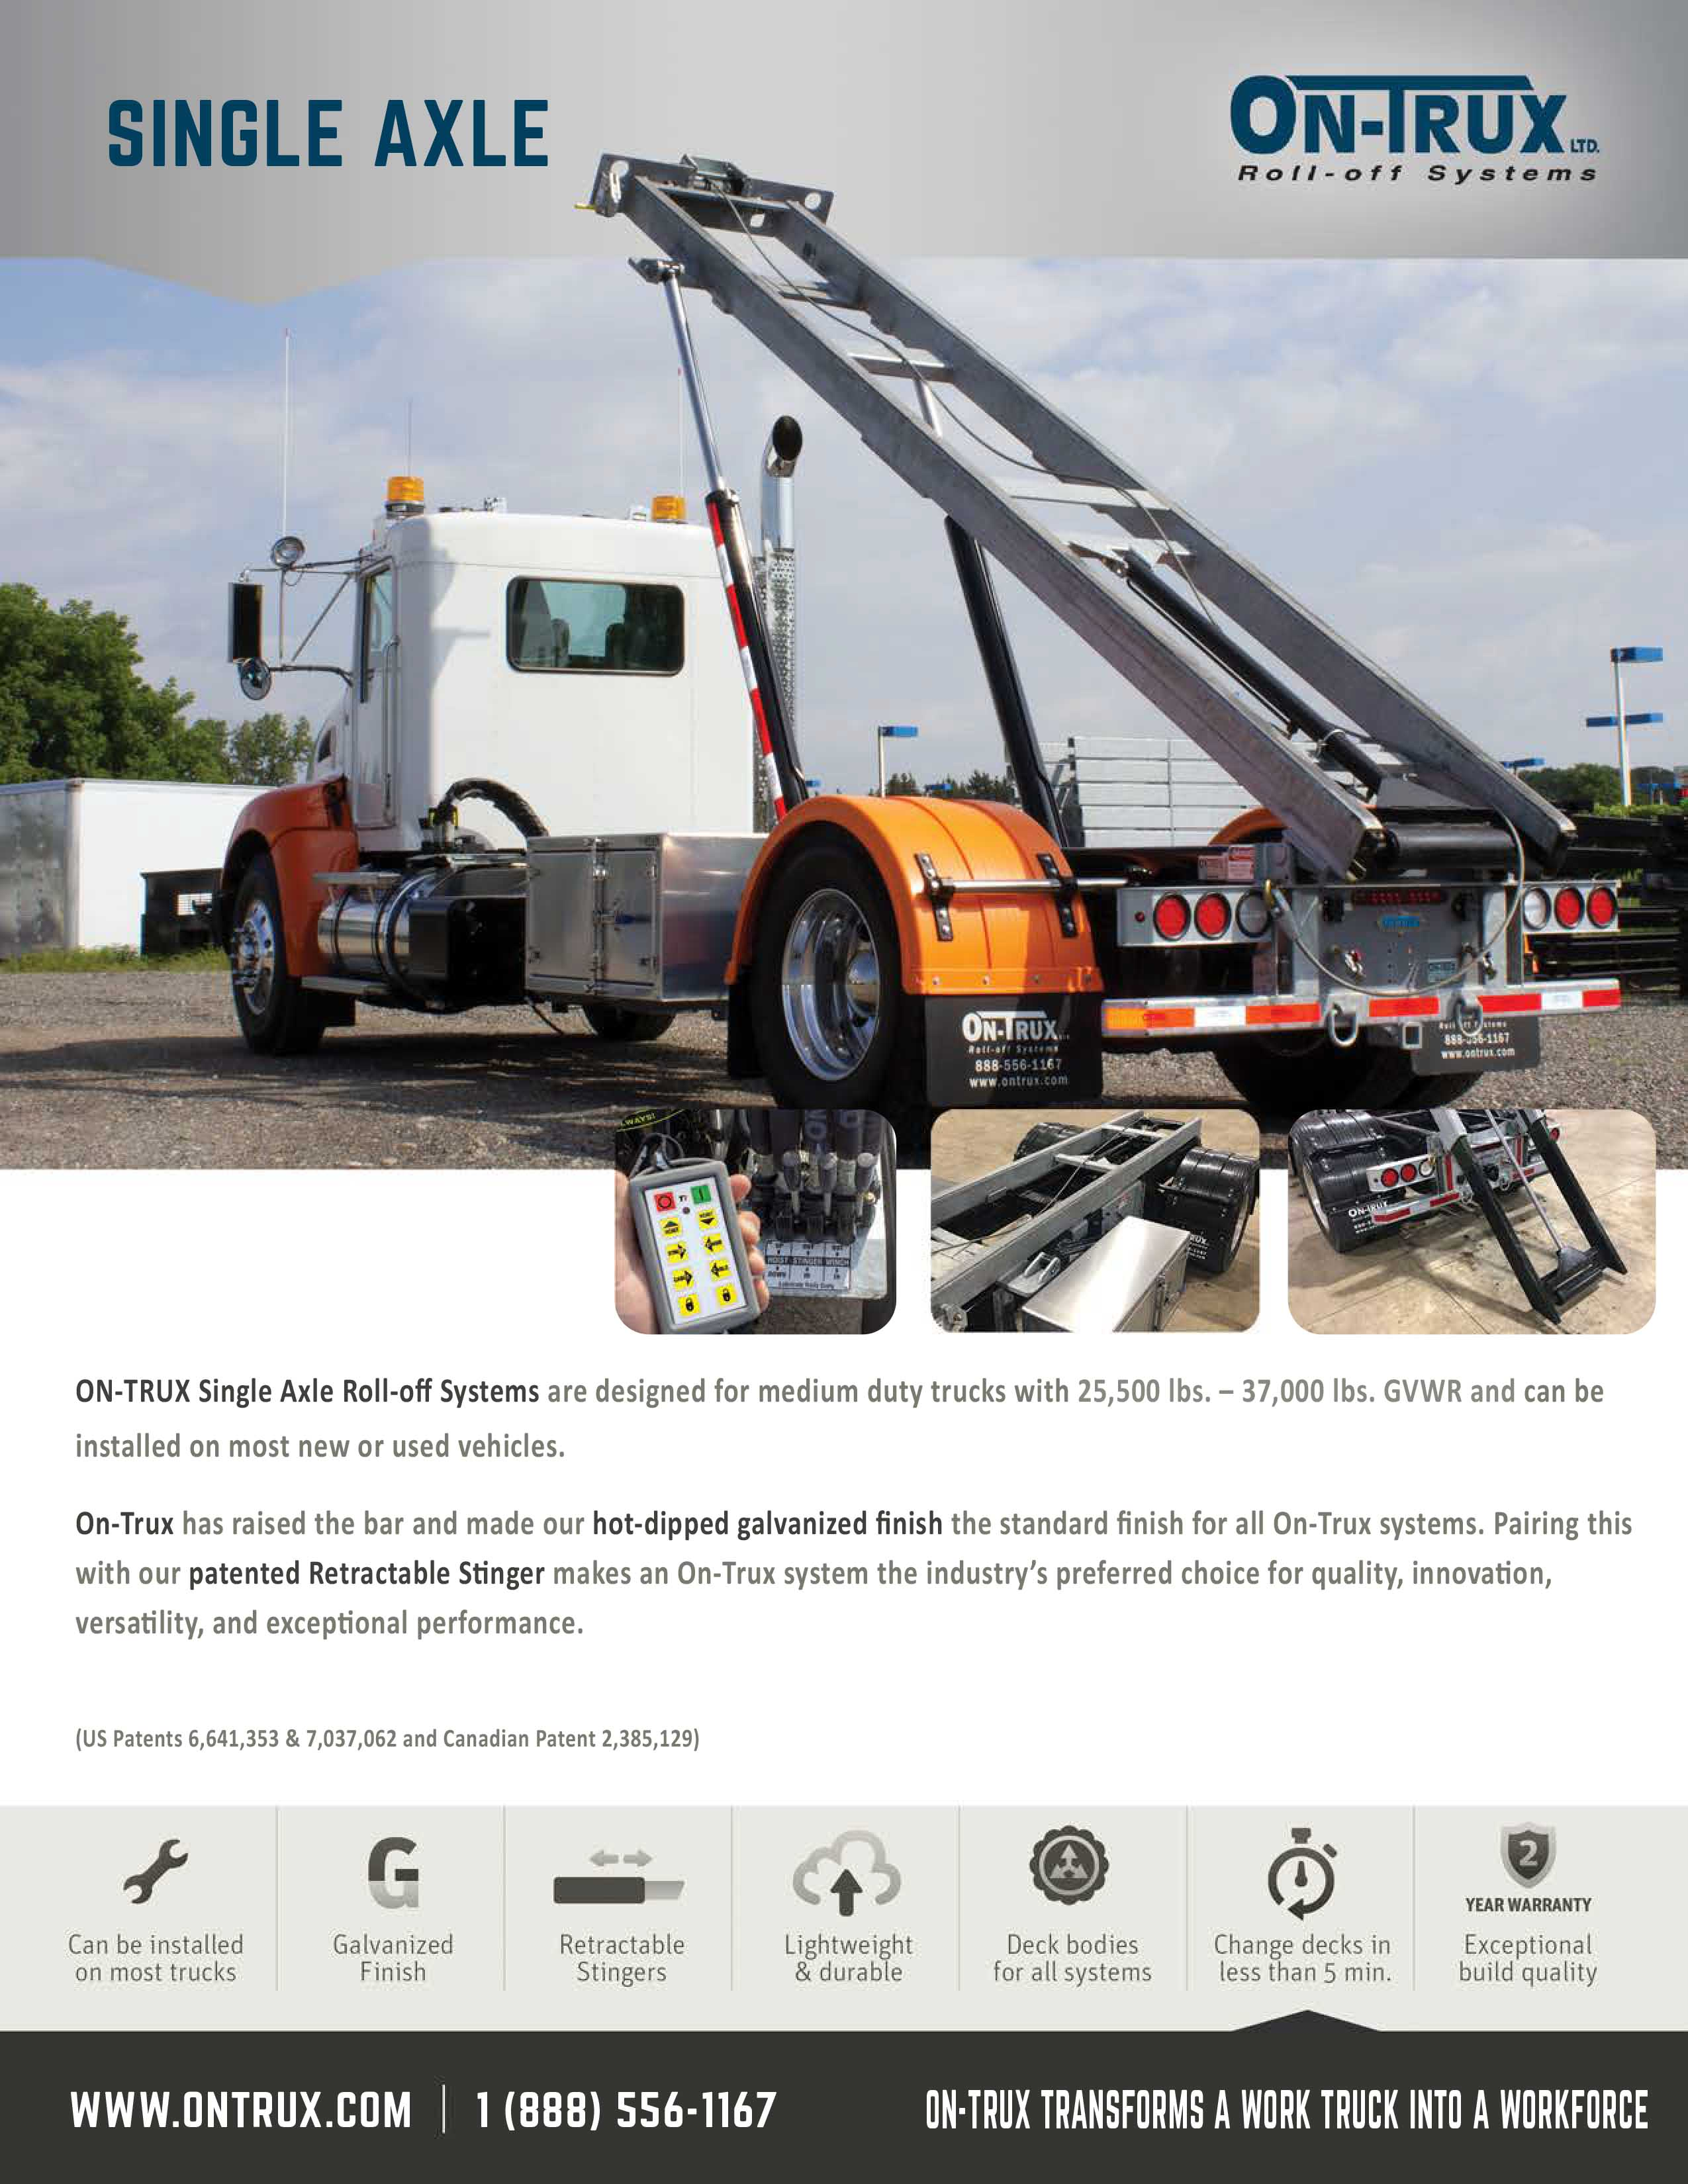 SINGLE AXLE ON-TRUX SYSTEM